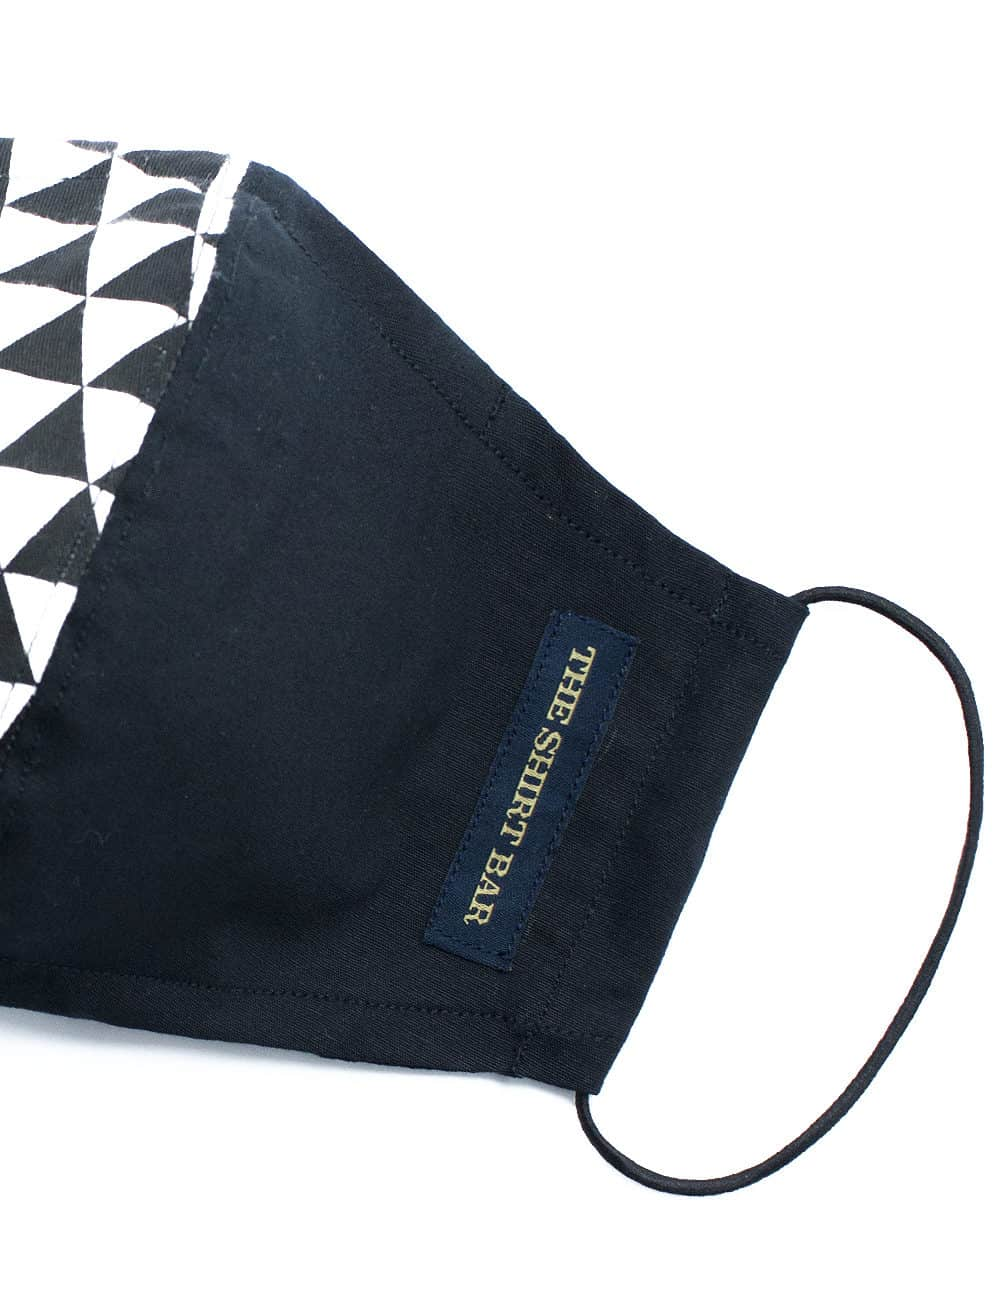 Esplanade SG Inspired Reusable Face Mask with Pouch - FM7.1